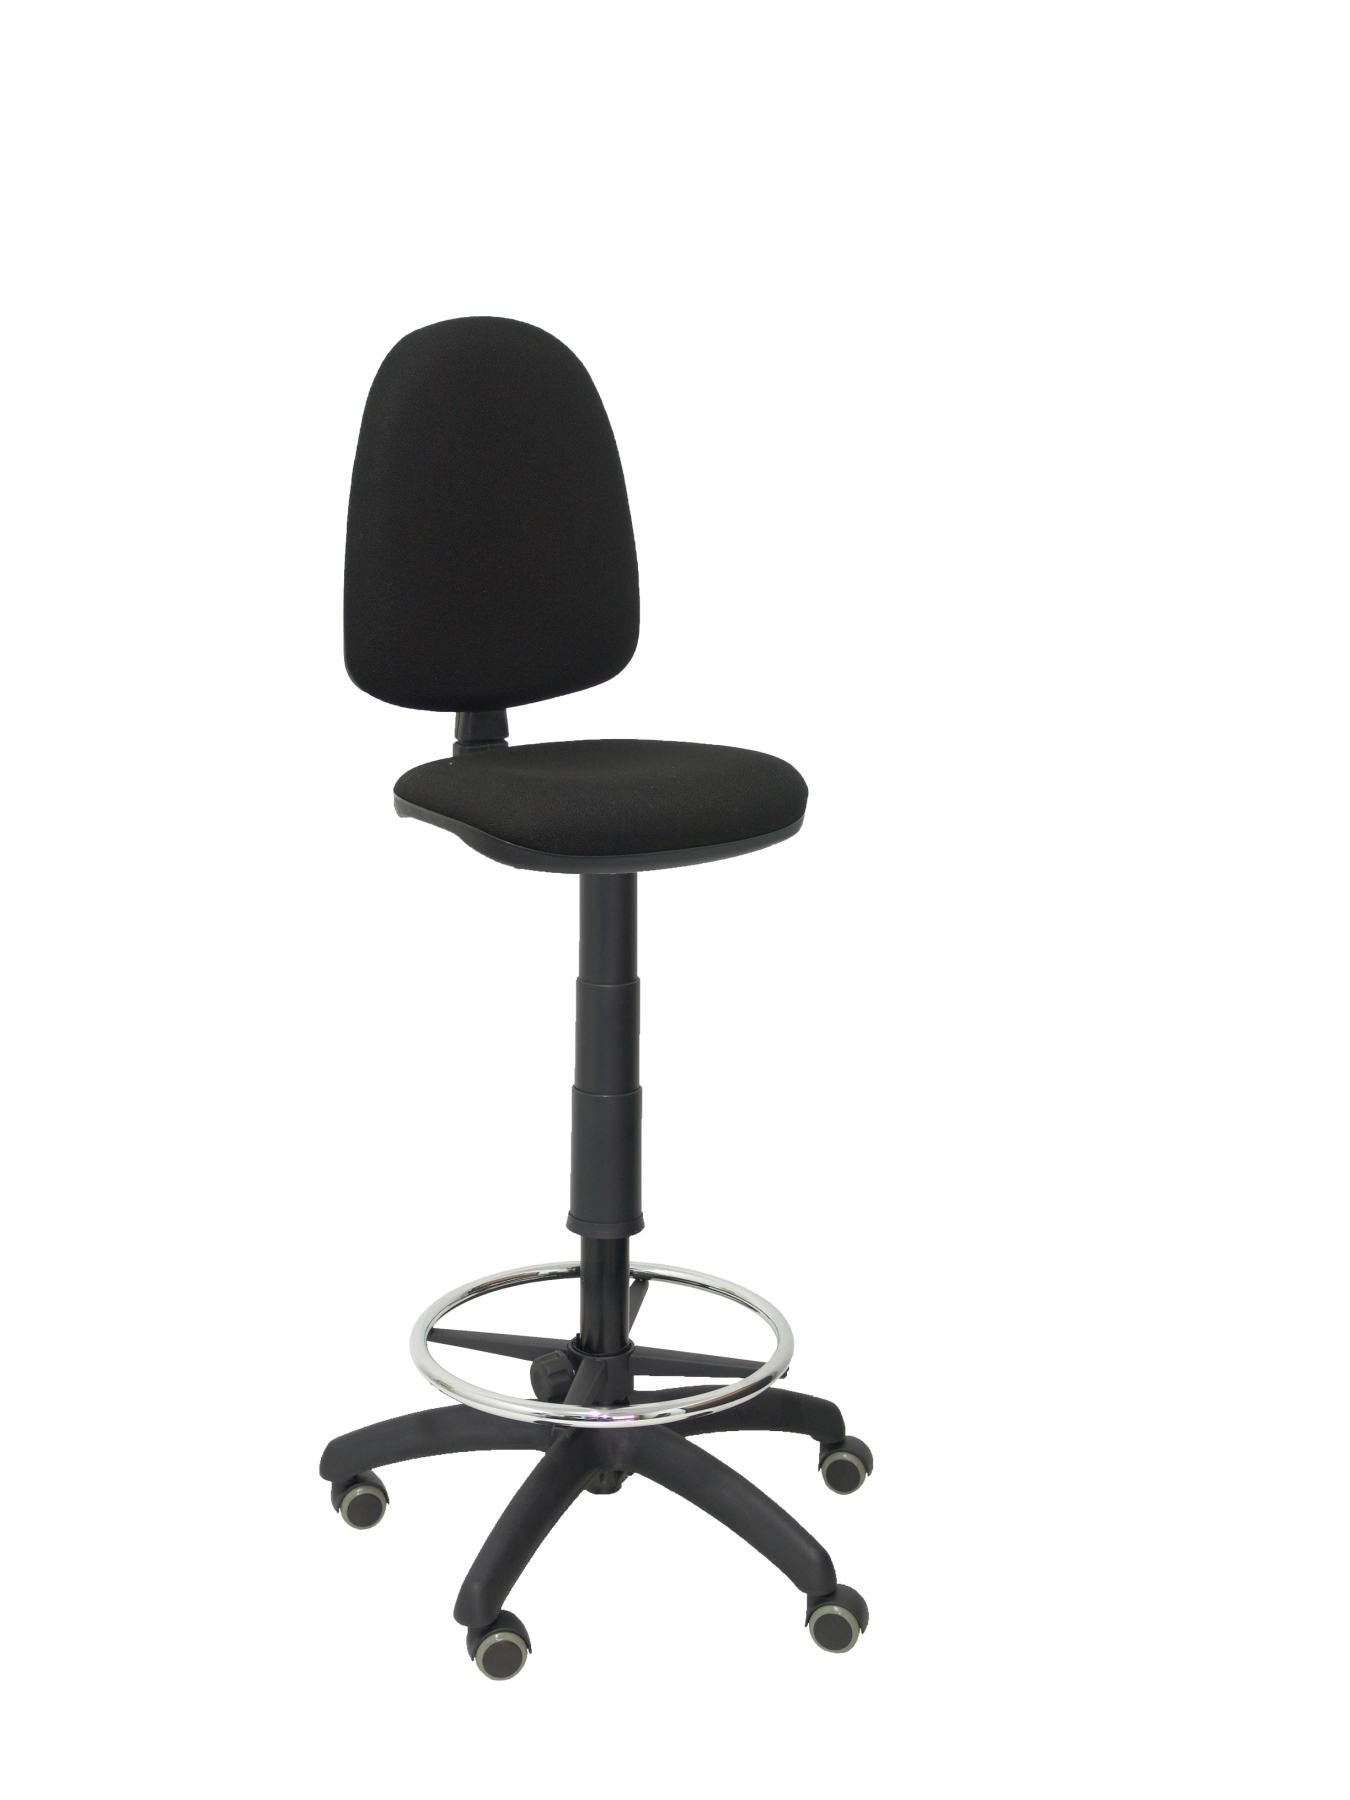 OUTLET Ergonomic Stool With Mechanism Permanent Contact, Adjustable Height, Hoop And Footrest Wheels Park